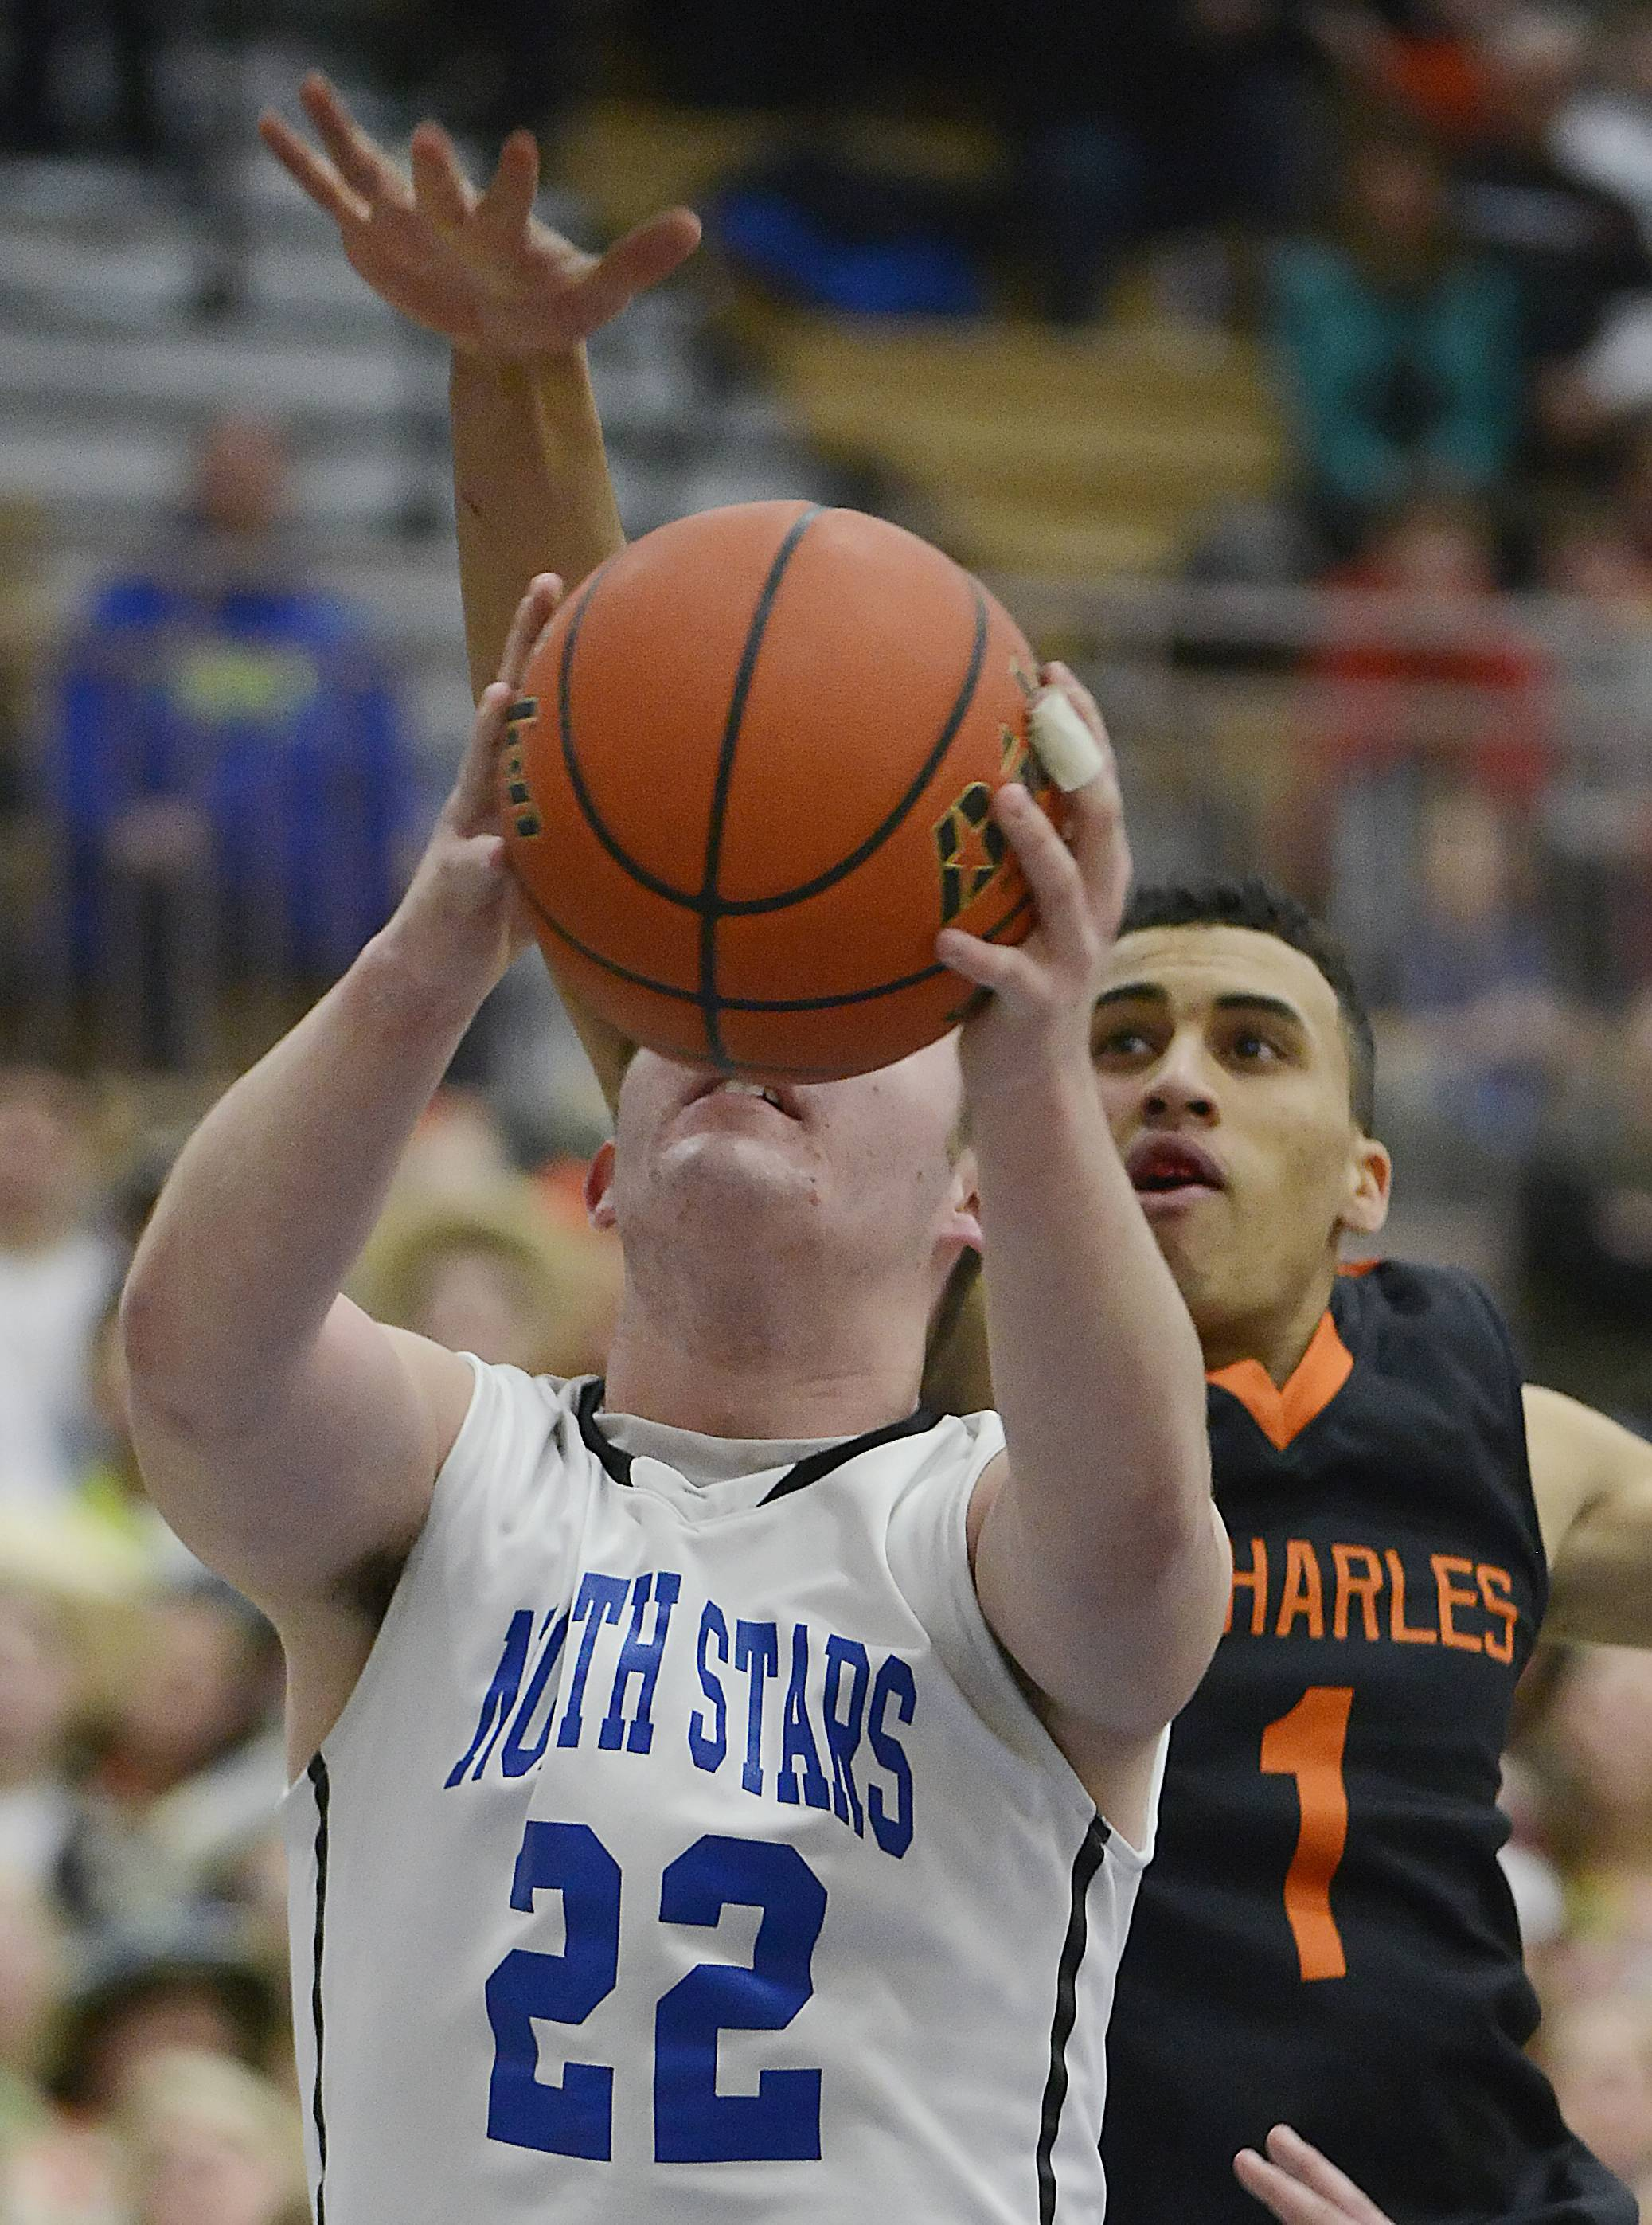 St. Charles North's Shane Dunteman tries to block a shot by St. Charles East's James McQuillan Wednesday in the regional game at St. Charles North.